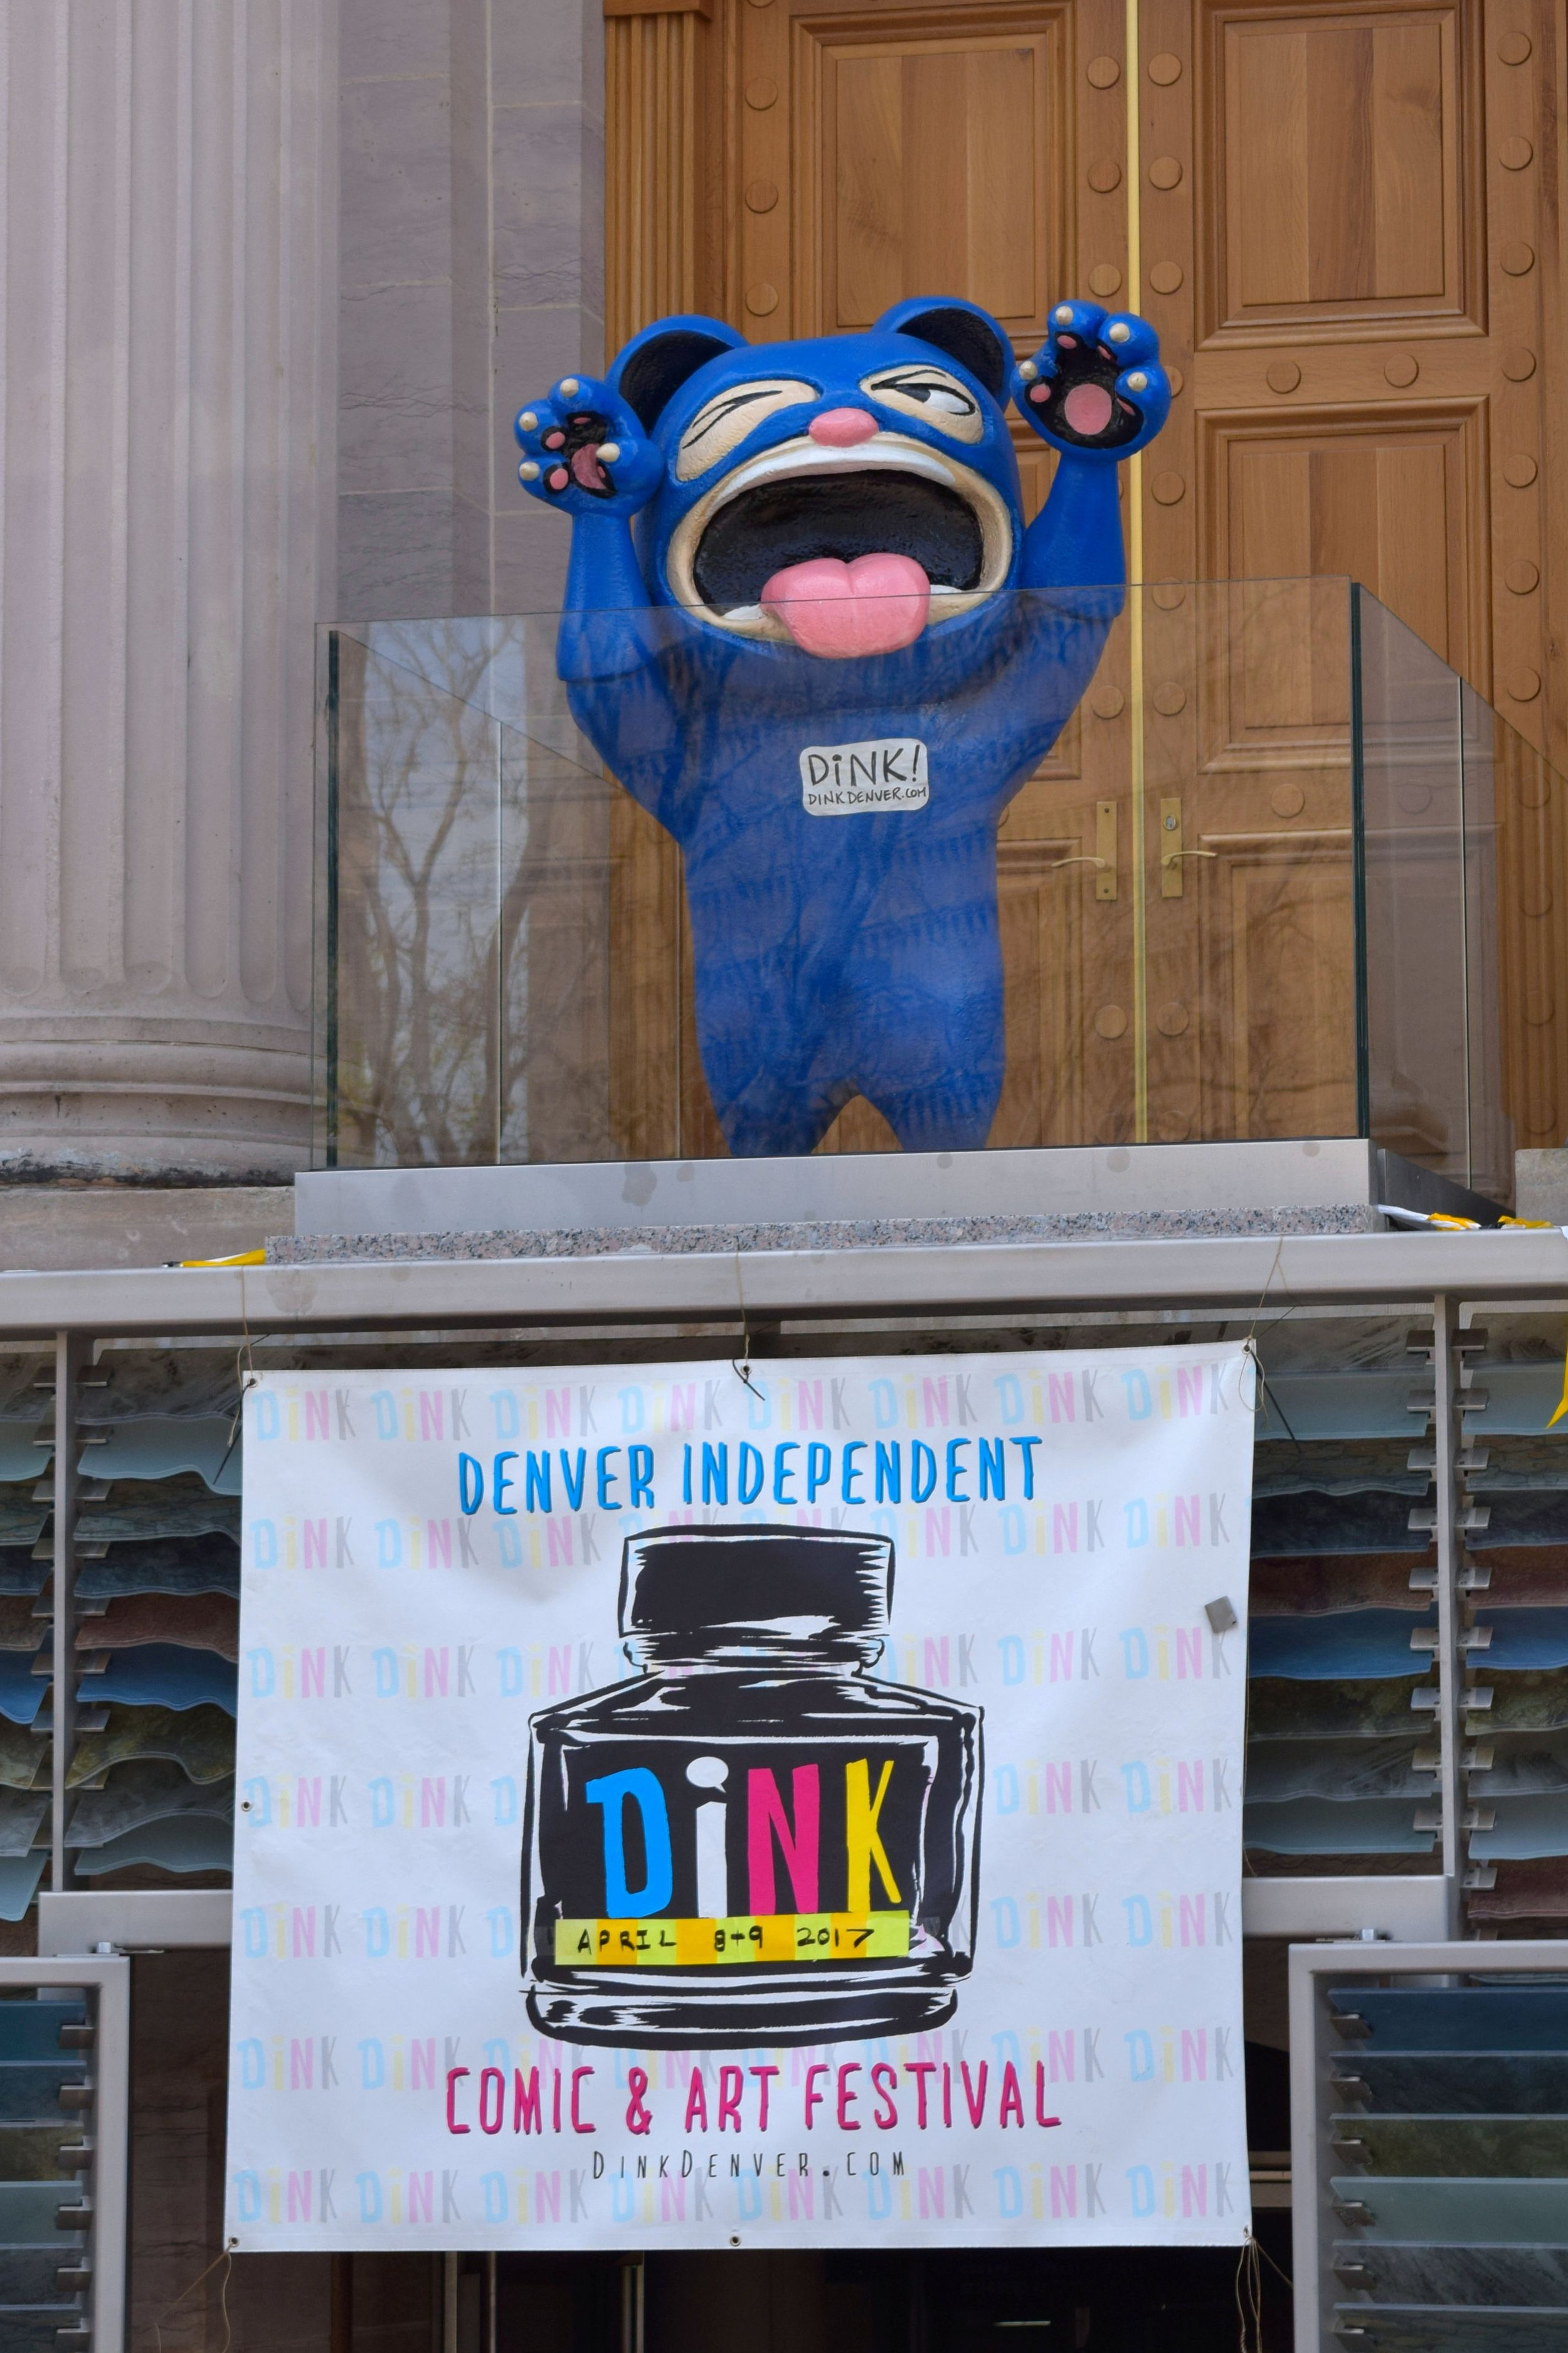 The DINK mascot, standing gaurd over the entrance.